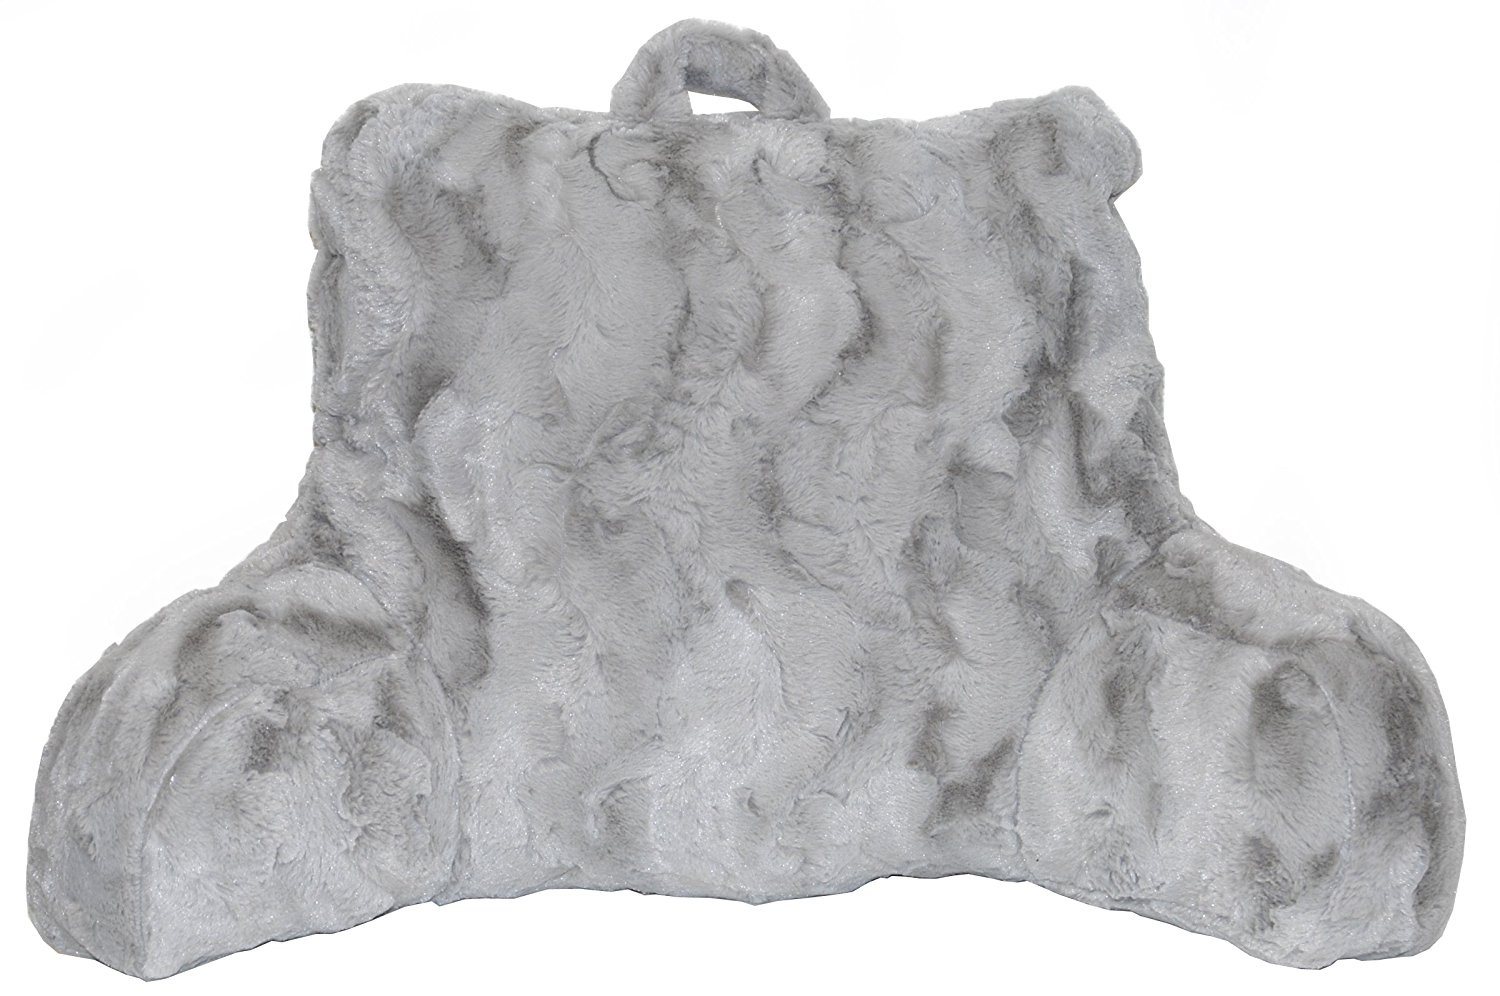 brentwood originals comfortable reading pillows drizzle grey